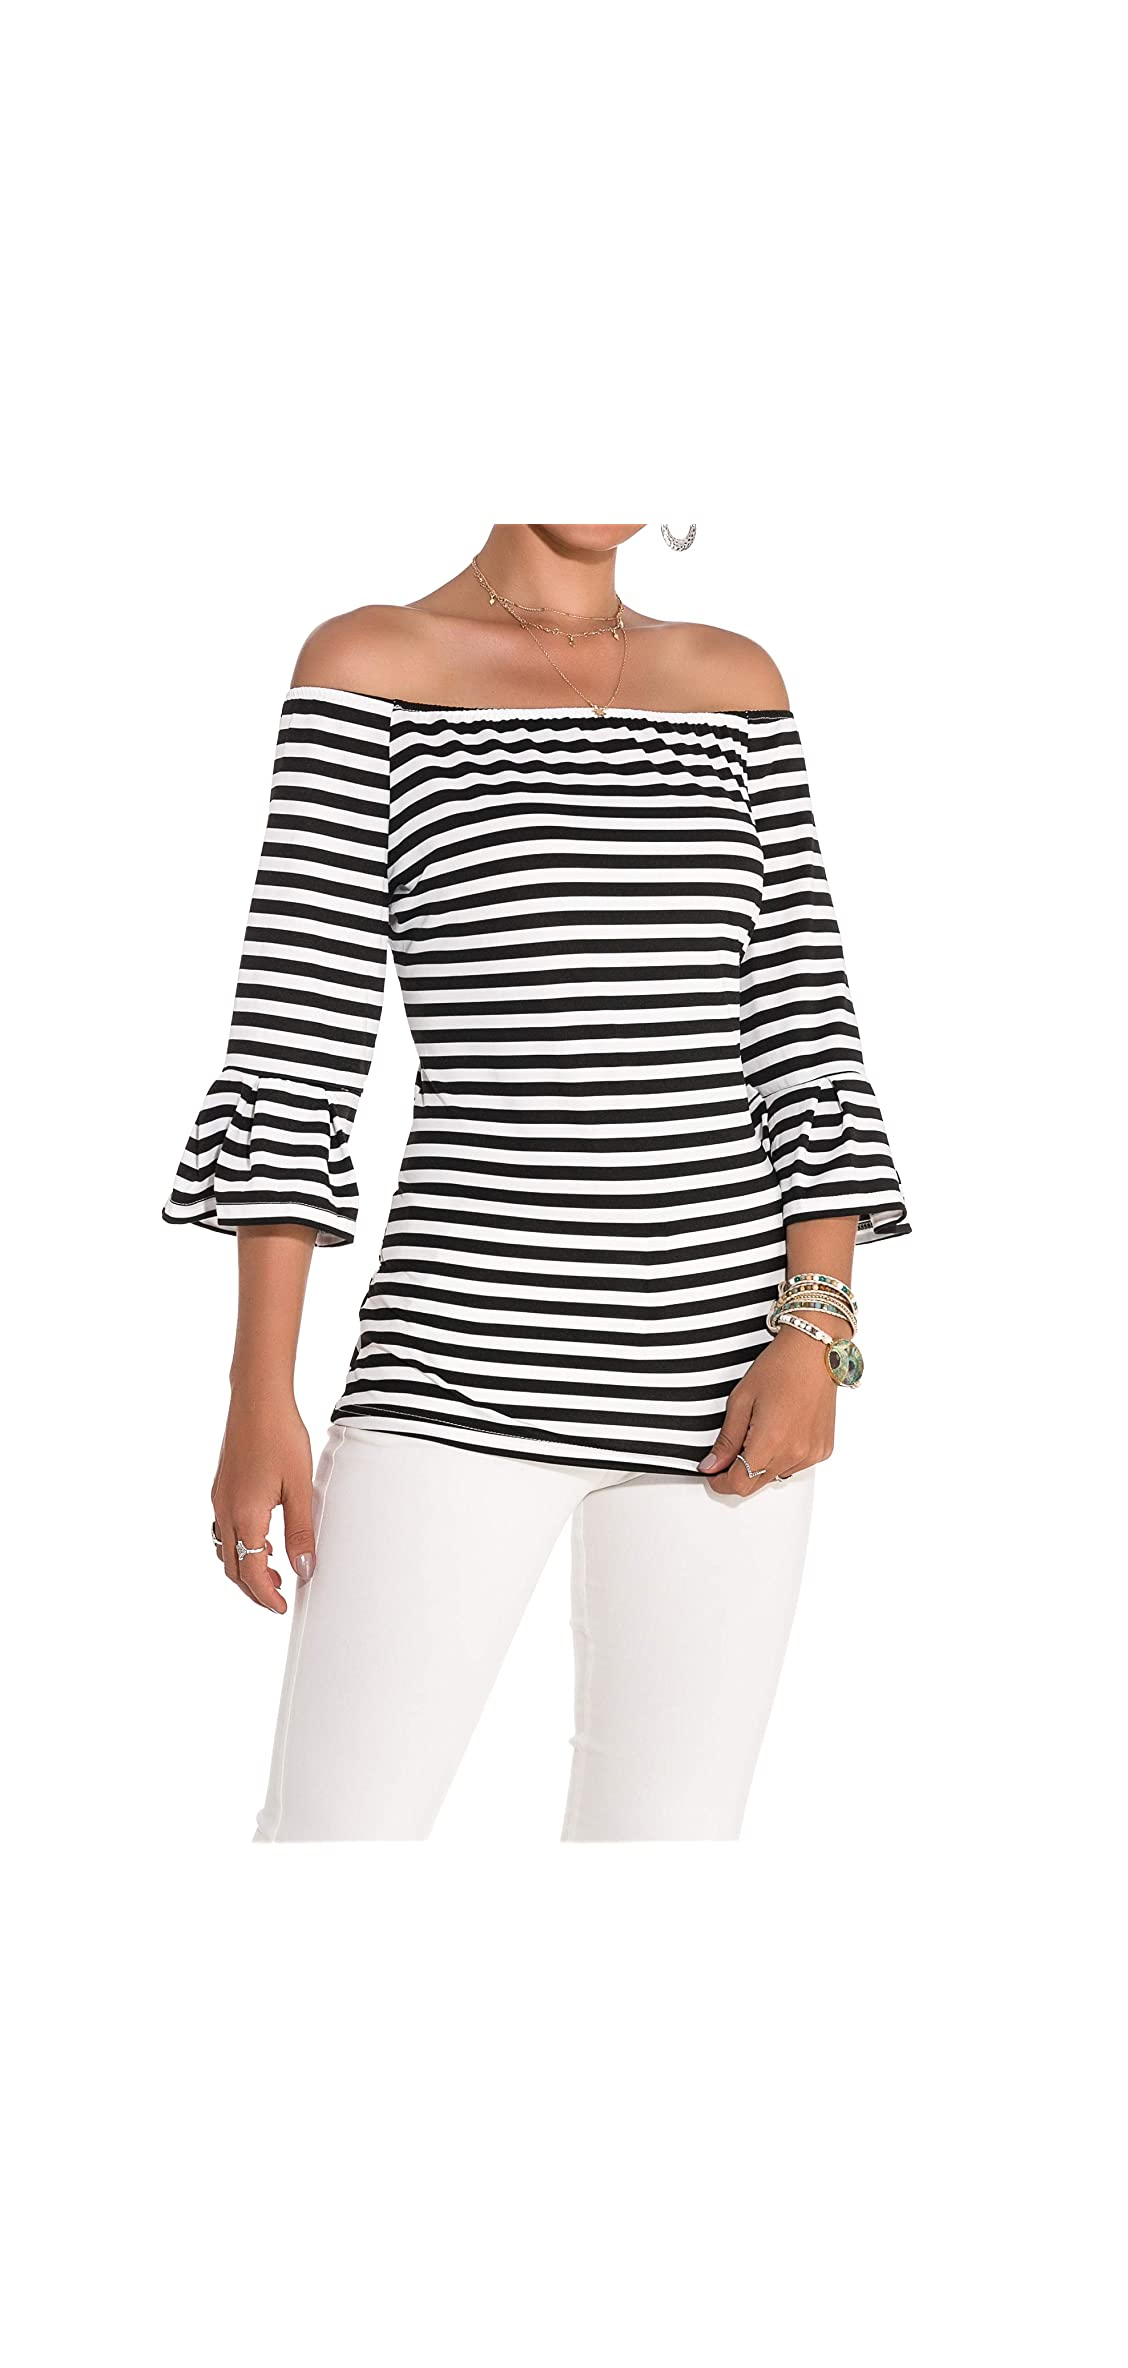 Women's Off Shoulder Tops Stretch Flared   Sleeve T